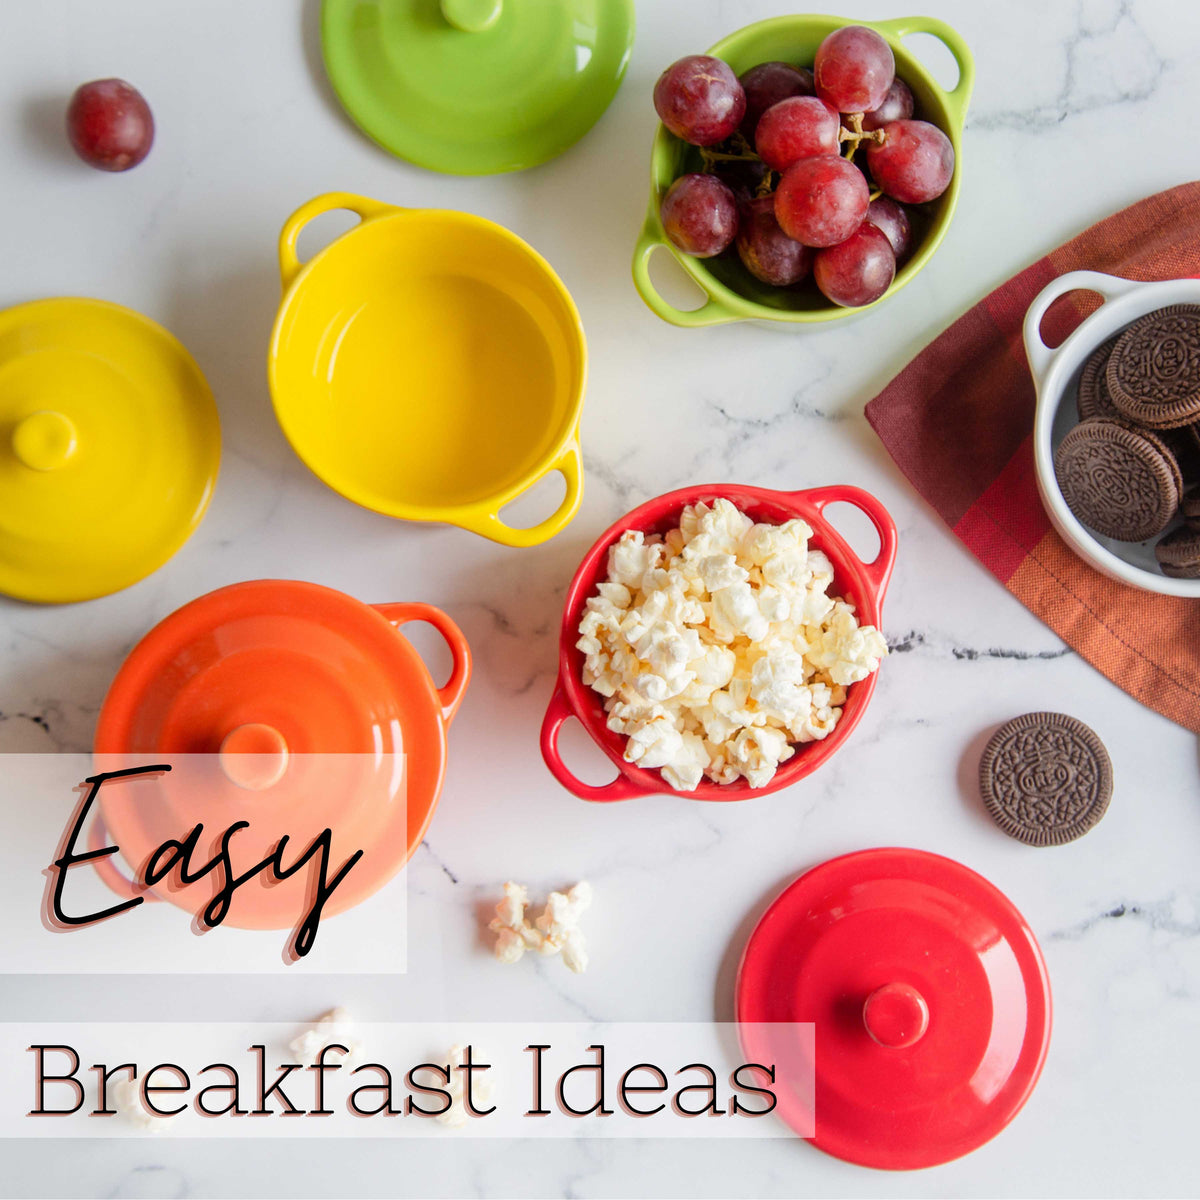 5 breakfast ideas [quick, easy & healthy]